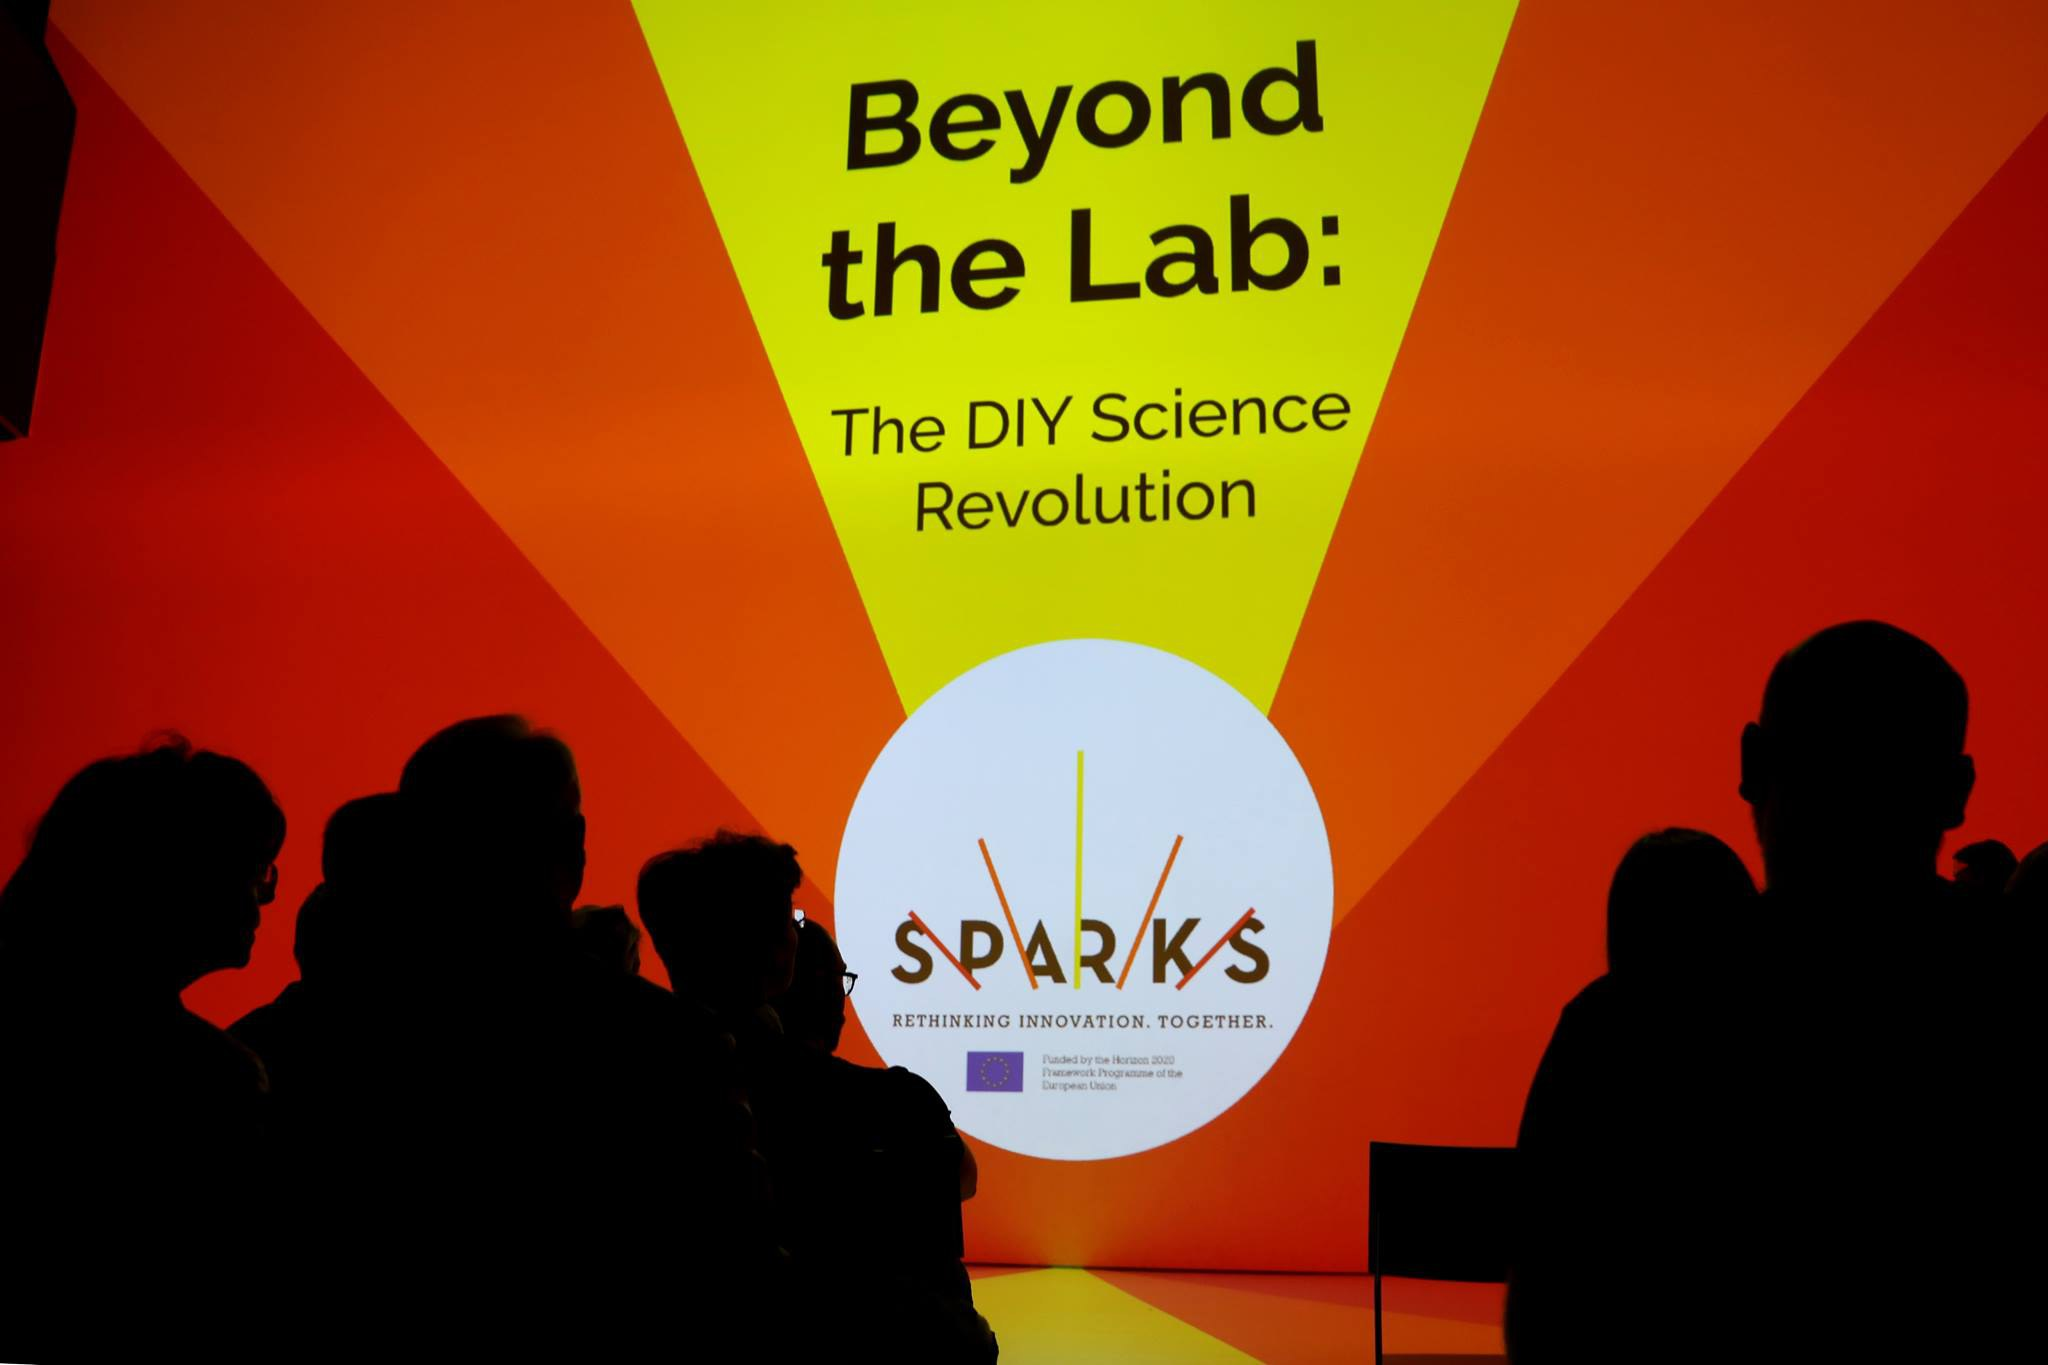 Beyond the Lab exhibition opening at Ars Electronica